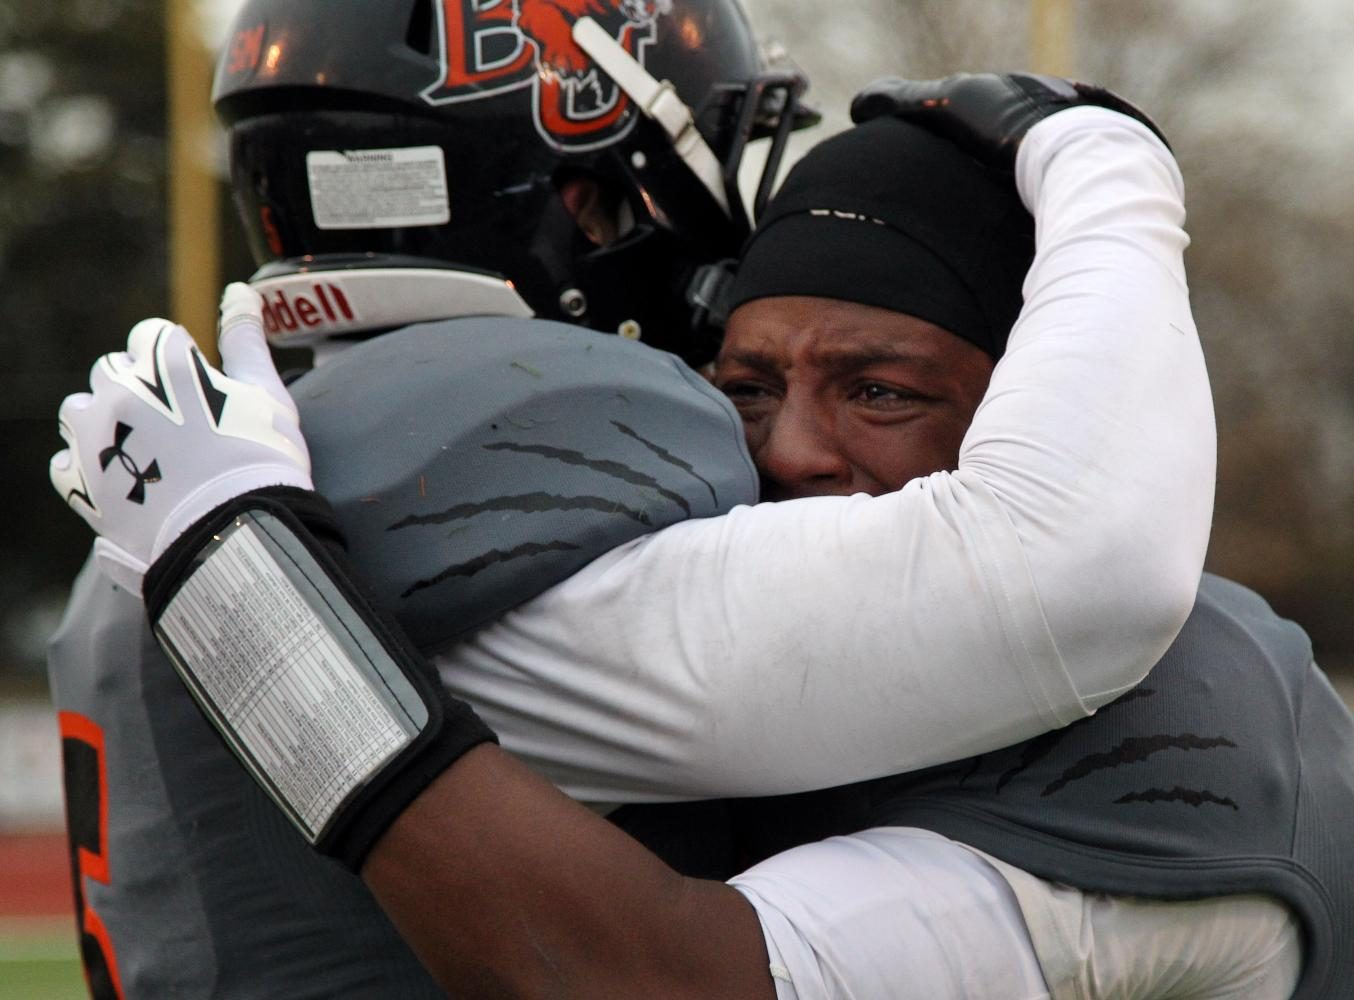 Senior Aundre Allen is comforted by a teammate after losing the last game of his college career to Missouri Valley College on Nov. 15, 2014, at Liston Stadium. Baker fell 27-24 after a late field goal, eliminating the Wildcats from qualifying for the playoffs. Taking photos after a tough loss is never something I want to do, but sometimes it results in even more powerful moments than after a win.